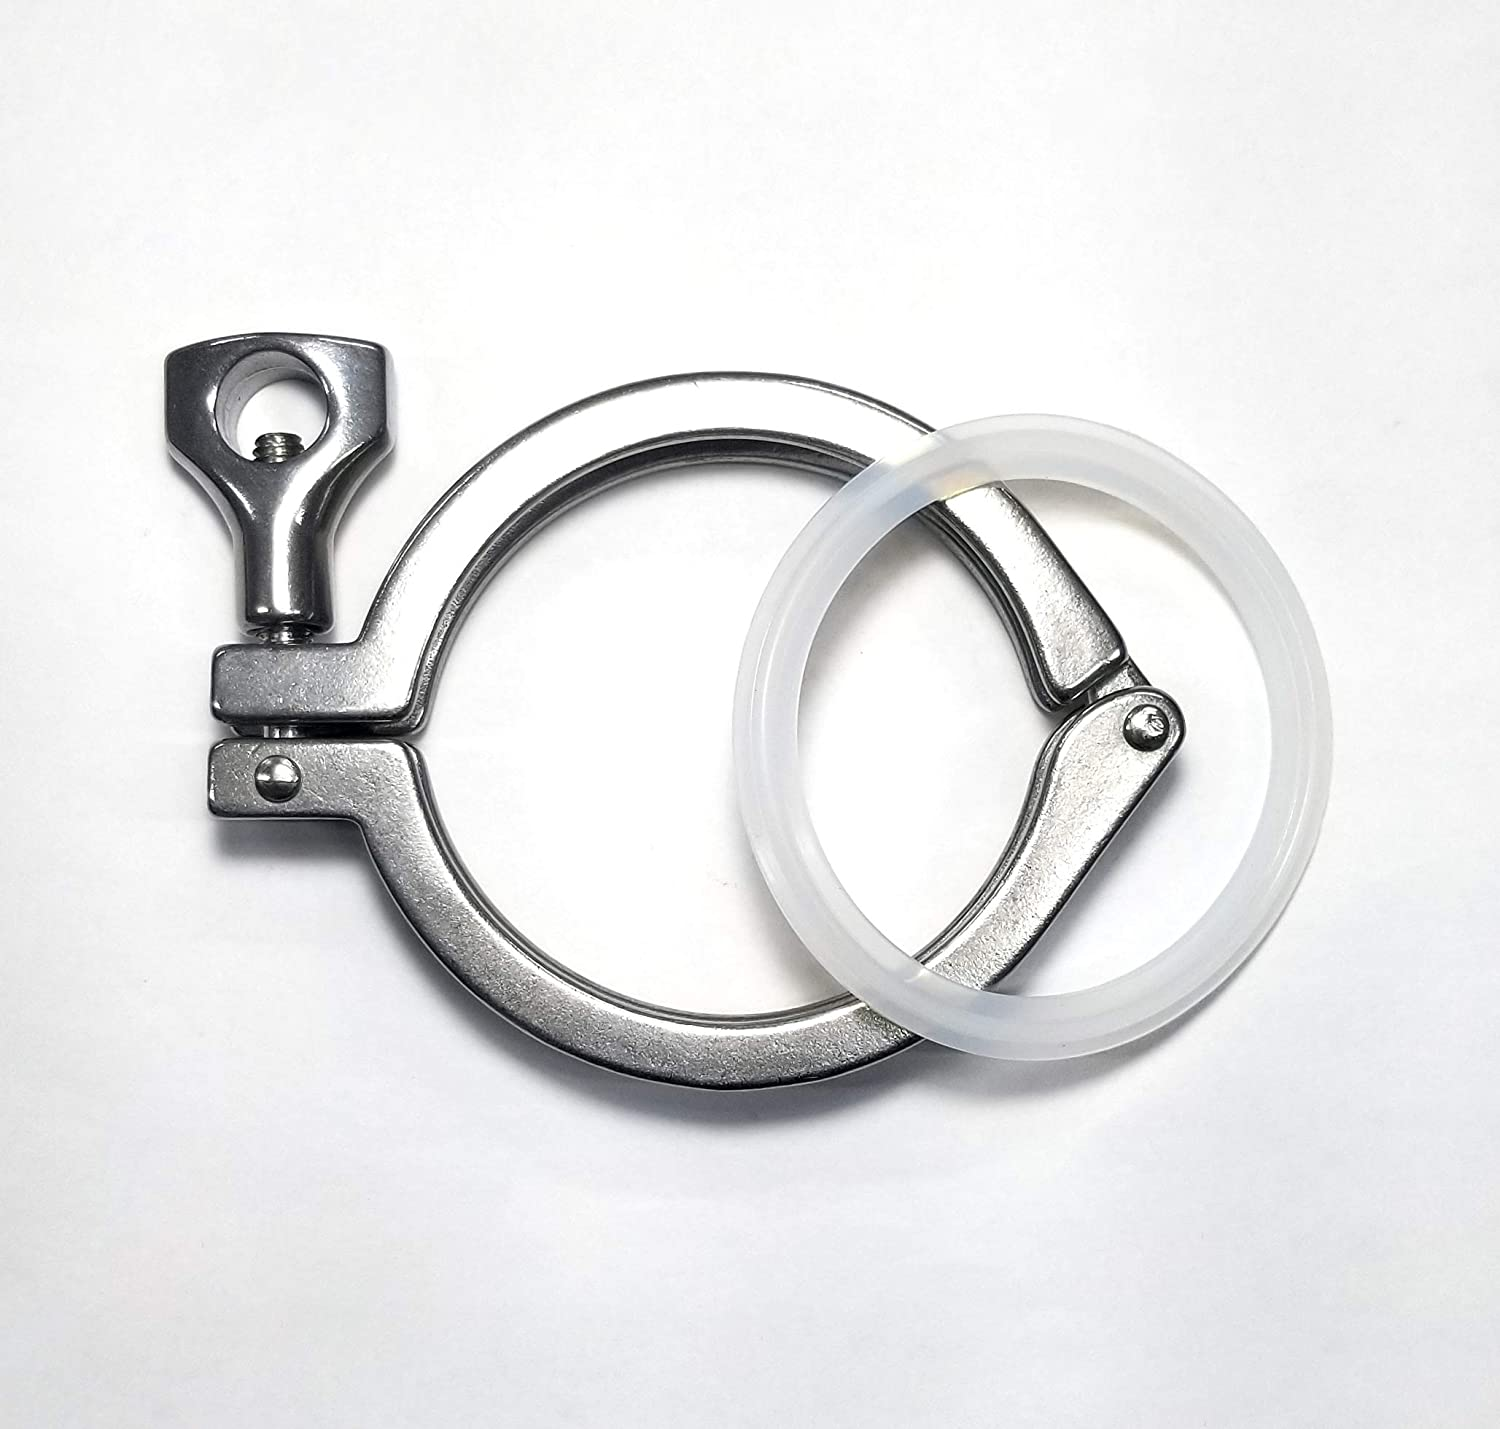 - SS304 Homebrew Clover Clamp 1 pc Tri-Clover 3 Tube OD Heavy Duty Single Pin w//Gasket Stainless Sanitary Clamp